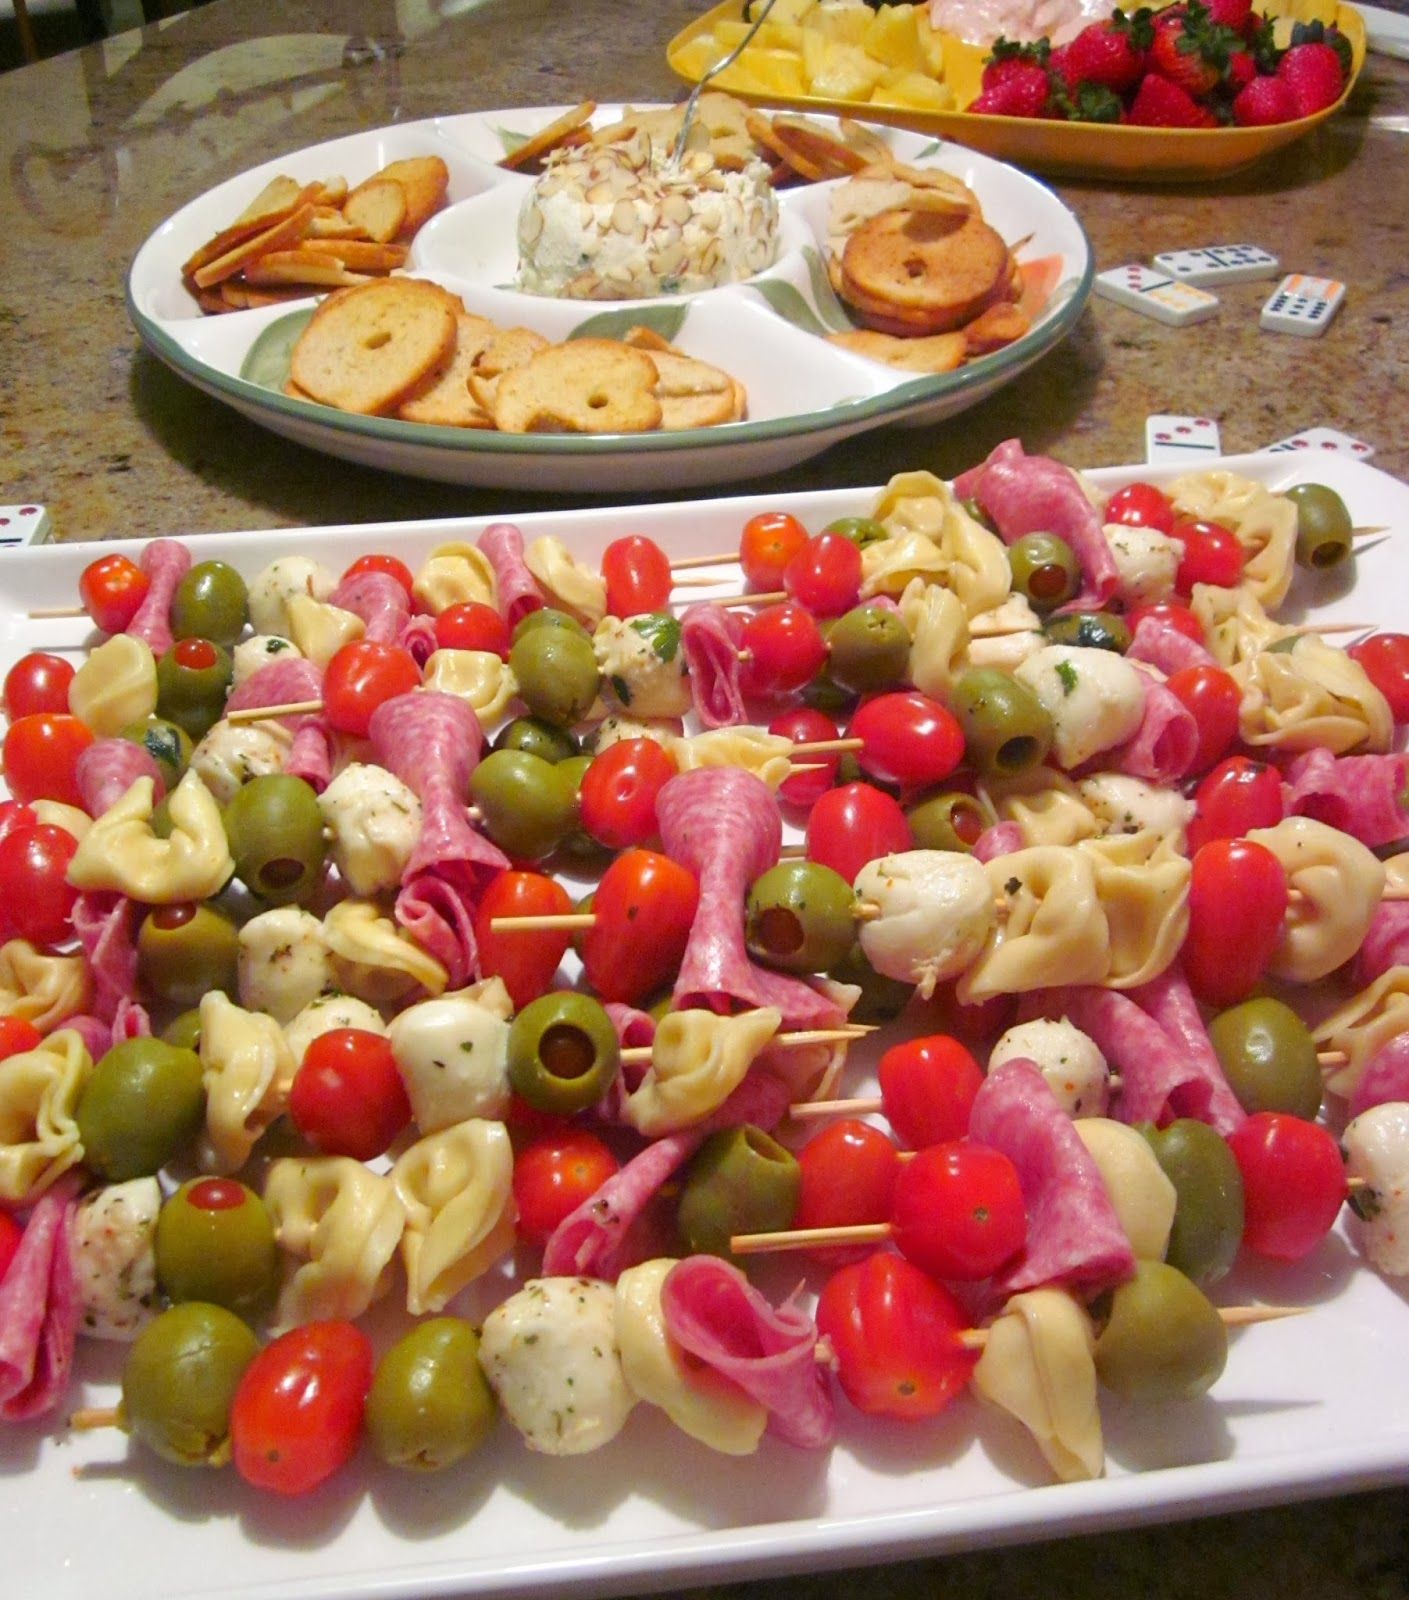 Pin it to win it book club with pinterest food ideas pinterest pin it to win it book club with pinterest food ideas forumfinder Images